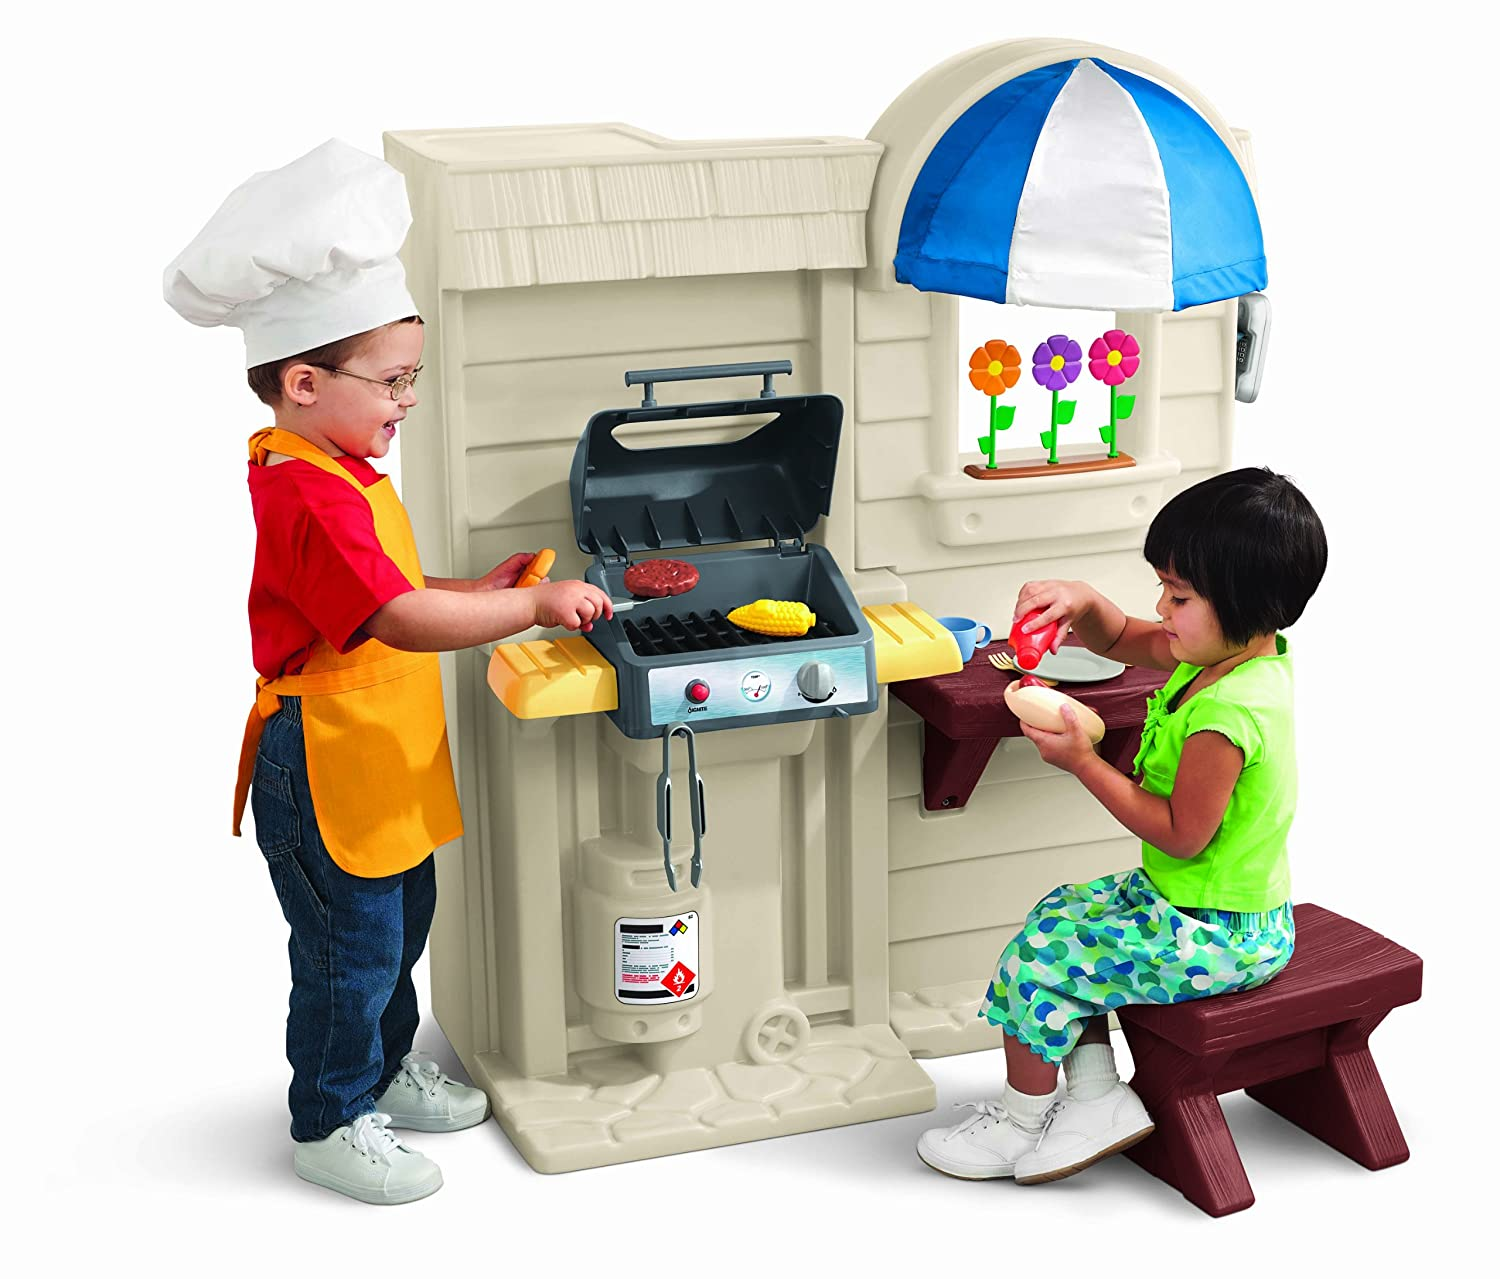 Amazon.com: Little Tikes Inside/Outside Cook N Grill Kitchen: Toys on little tikes kitchen corner, little tikes pizza kitchen, little tikes gourmet prep n serve kitchen, little tikes coupe with cart, little tikes toddler kitchen set, little tikes step 2 kitchen, little tikes grill and go, little tikes kitchen playset, little tikes kitchen accessories, little girl kitchen sets, little tikes get out and grill, little tikes cozy coupe shopping cart, little tikes play kitchen, little tikes family kitchen, little tikes toy kitchen, little tikes 2 in 1 garden cart, little tikes grow with me kitchen,